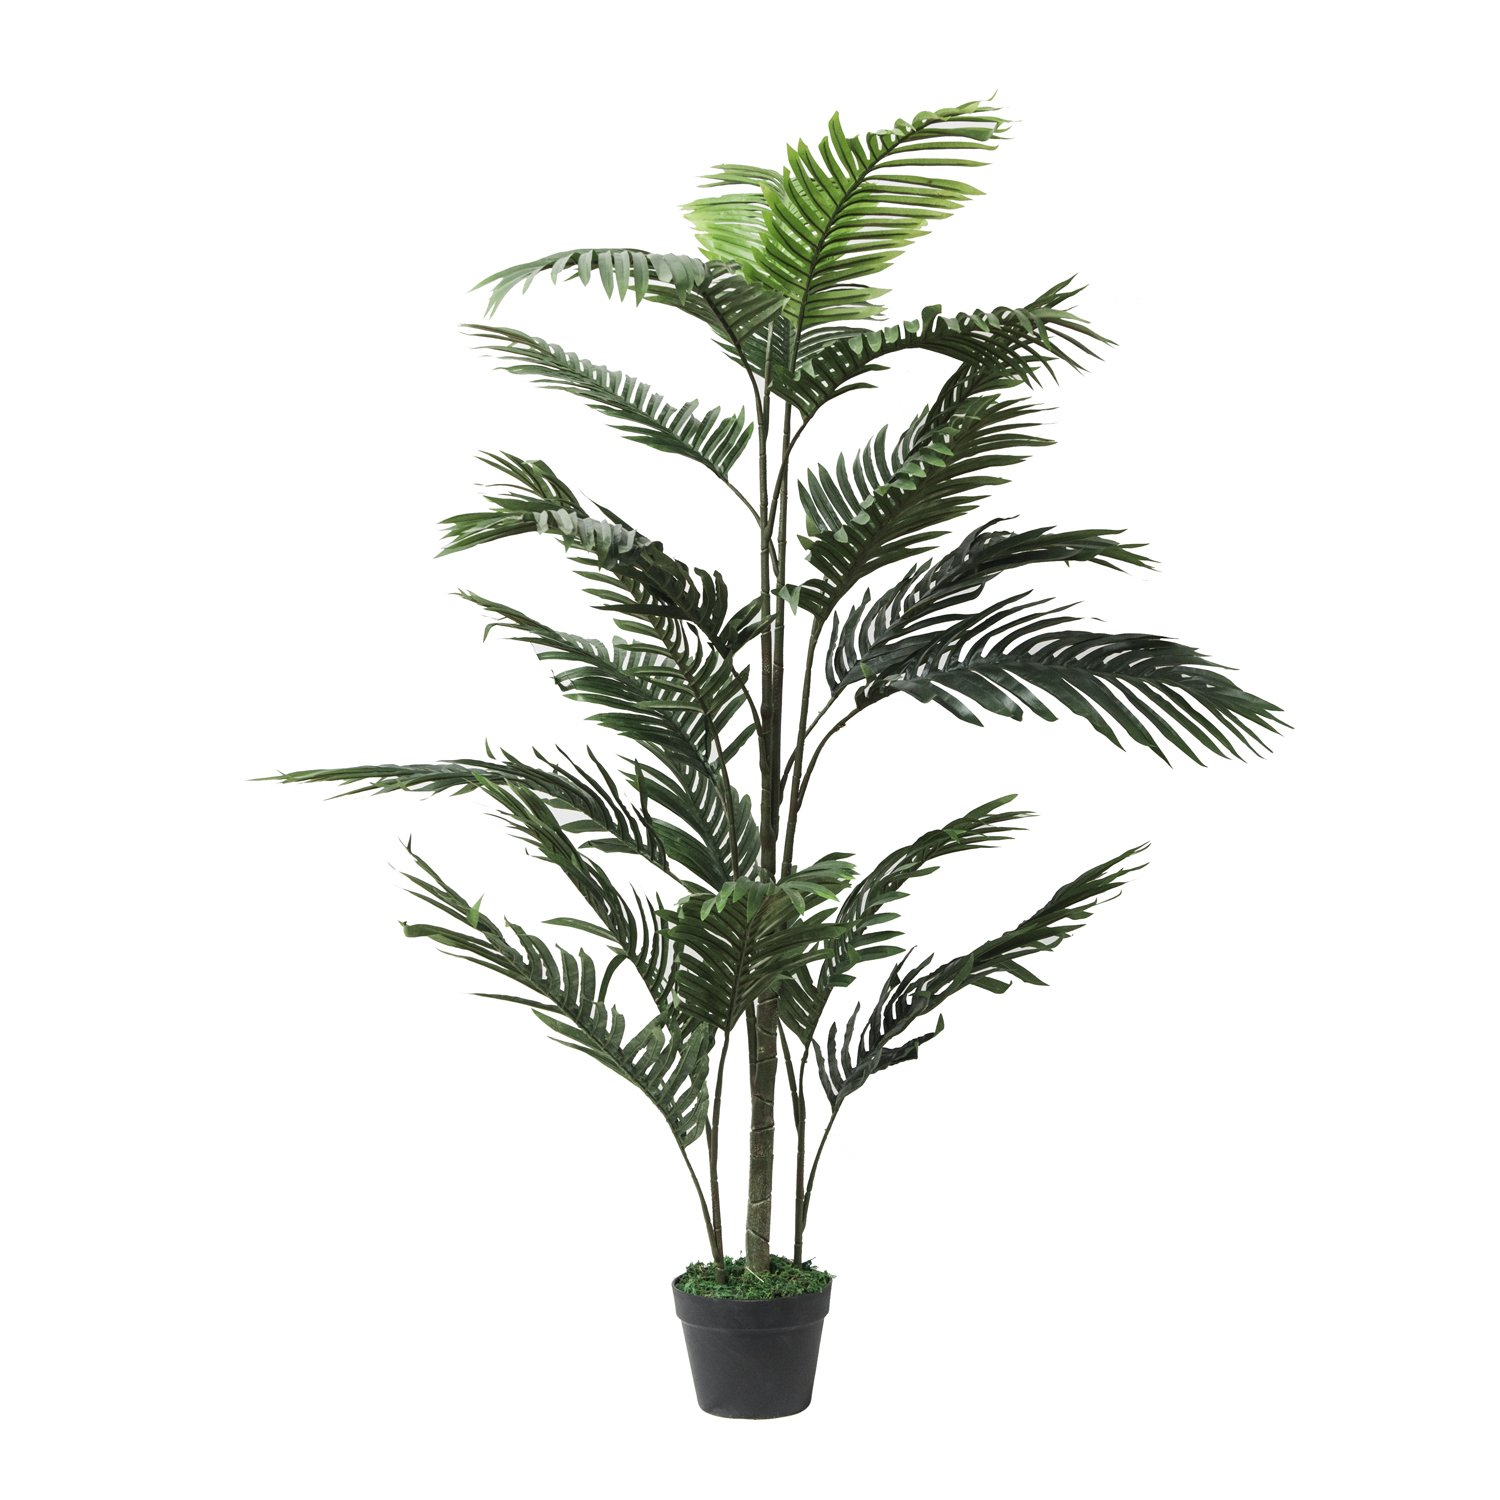 RUOPEI 4.5ft ,Set of 2 Artificial Palm Tree in Plastic Pot, Potted Fake Greenery Decoration with Bendable Branches for Home, Restaurant, Cafe or Office Decorating by RUOPEI